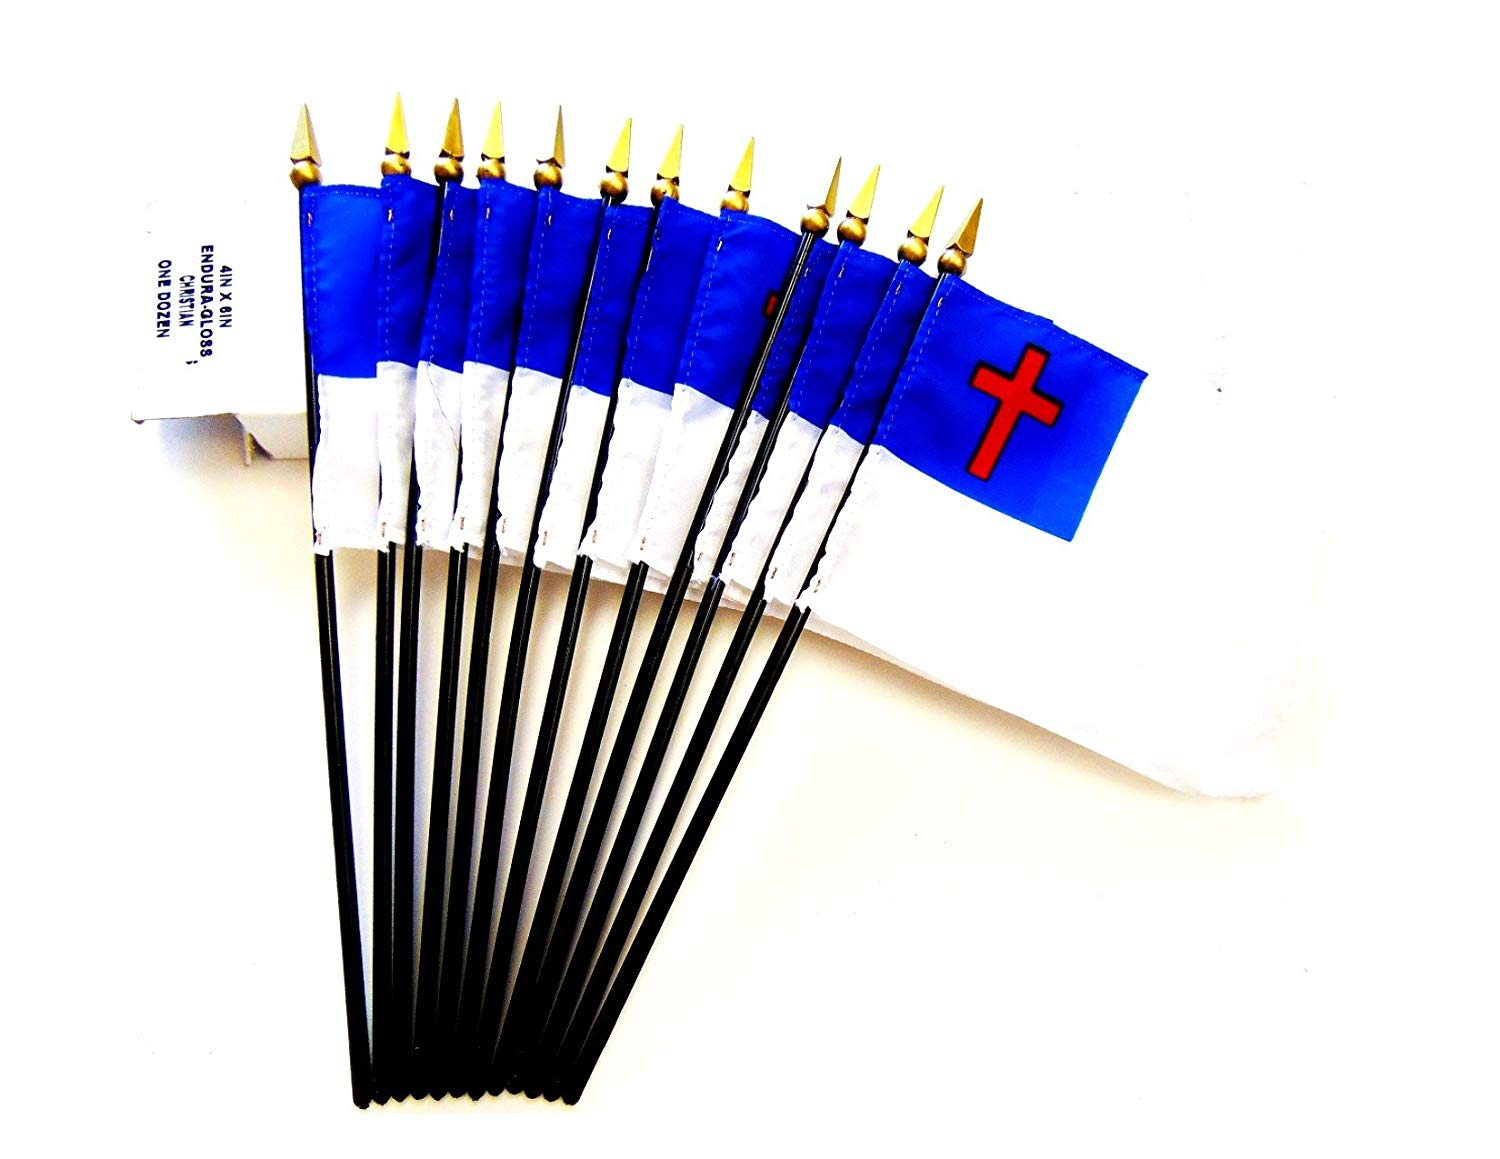 "MADE IN USA!! Box of 12 Christian 4""x6"" Miniature Desk & Table Flags; 12 American Made Small Mini Christian Flags in a Custom Made Cardboard Box Specifically Made for These Flags"